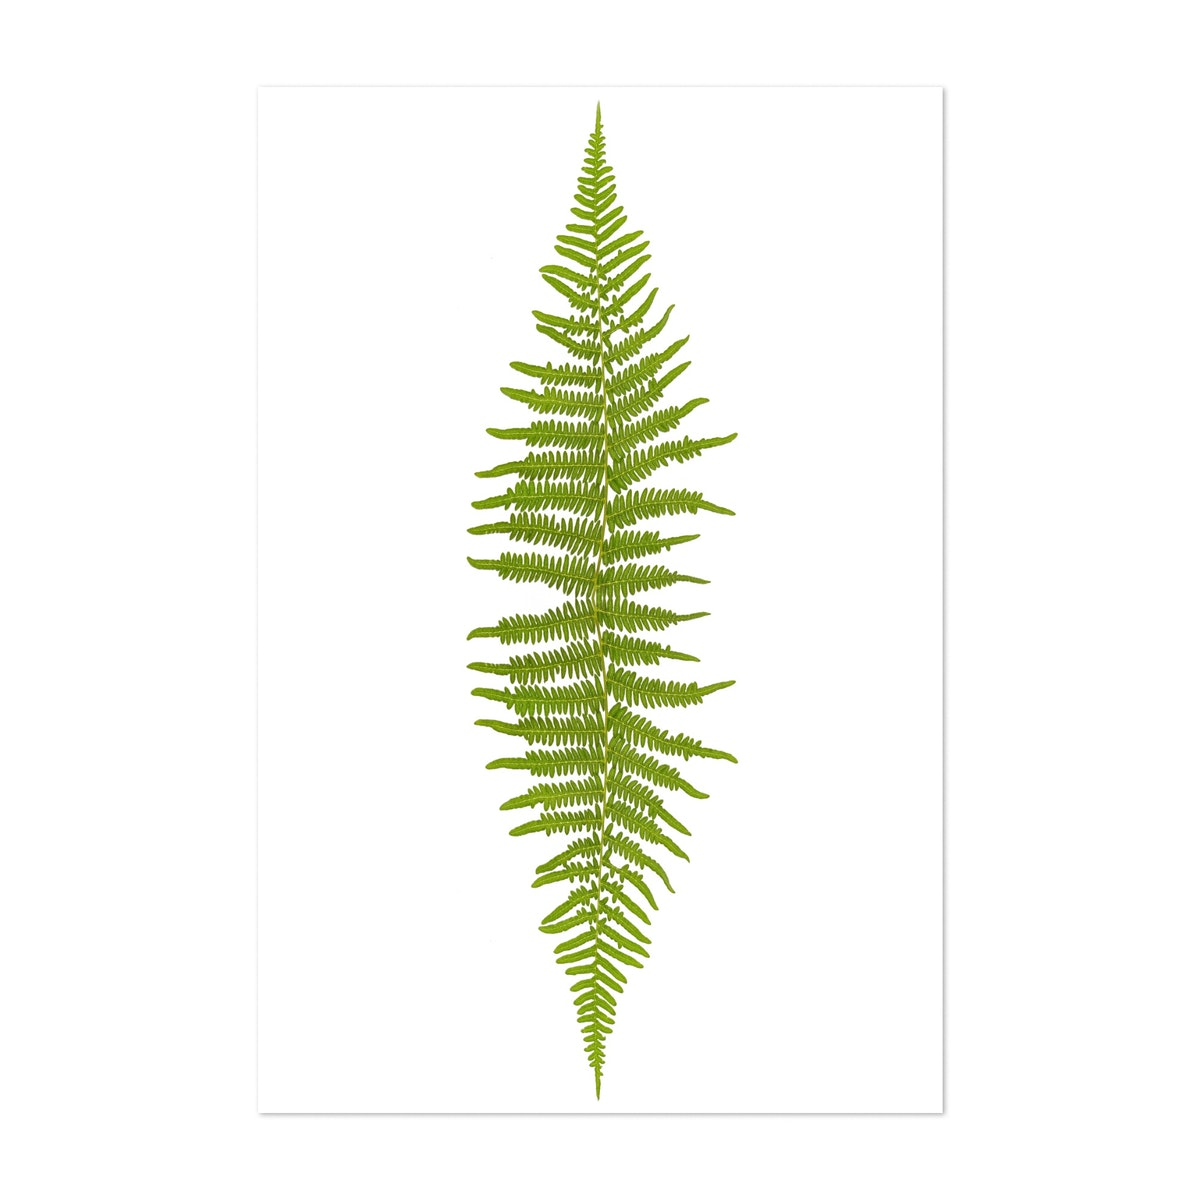 Tall Green Fern on White